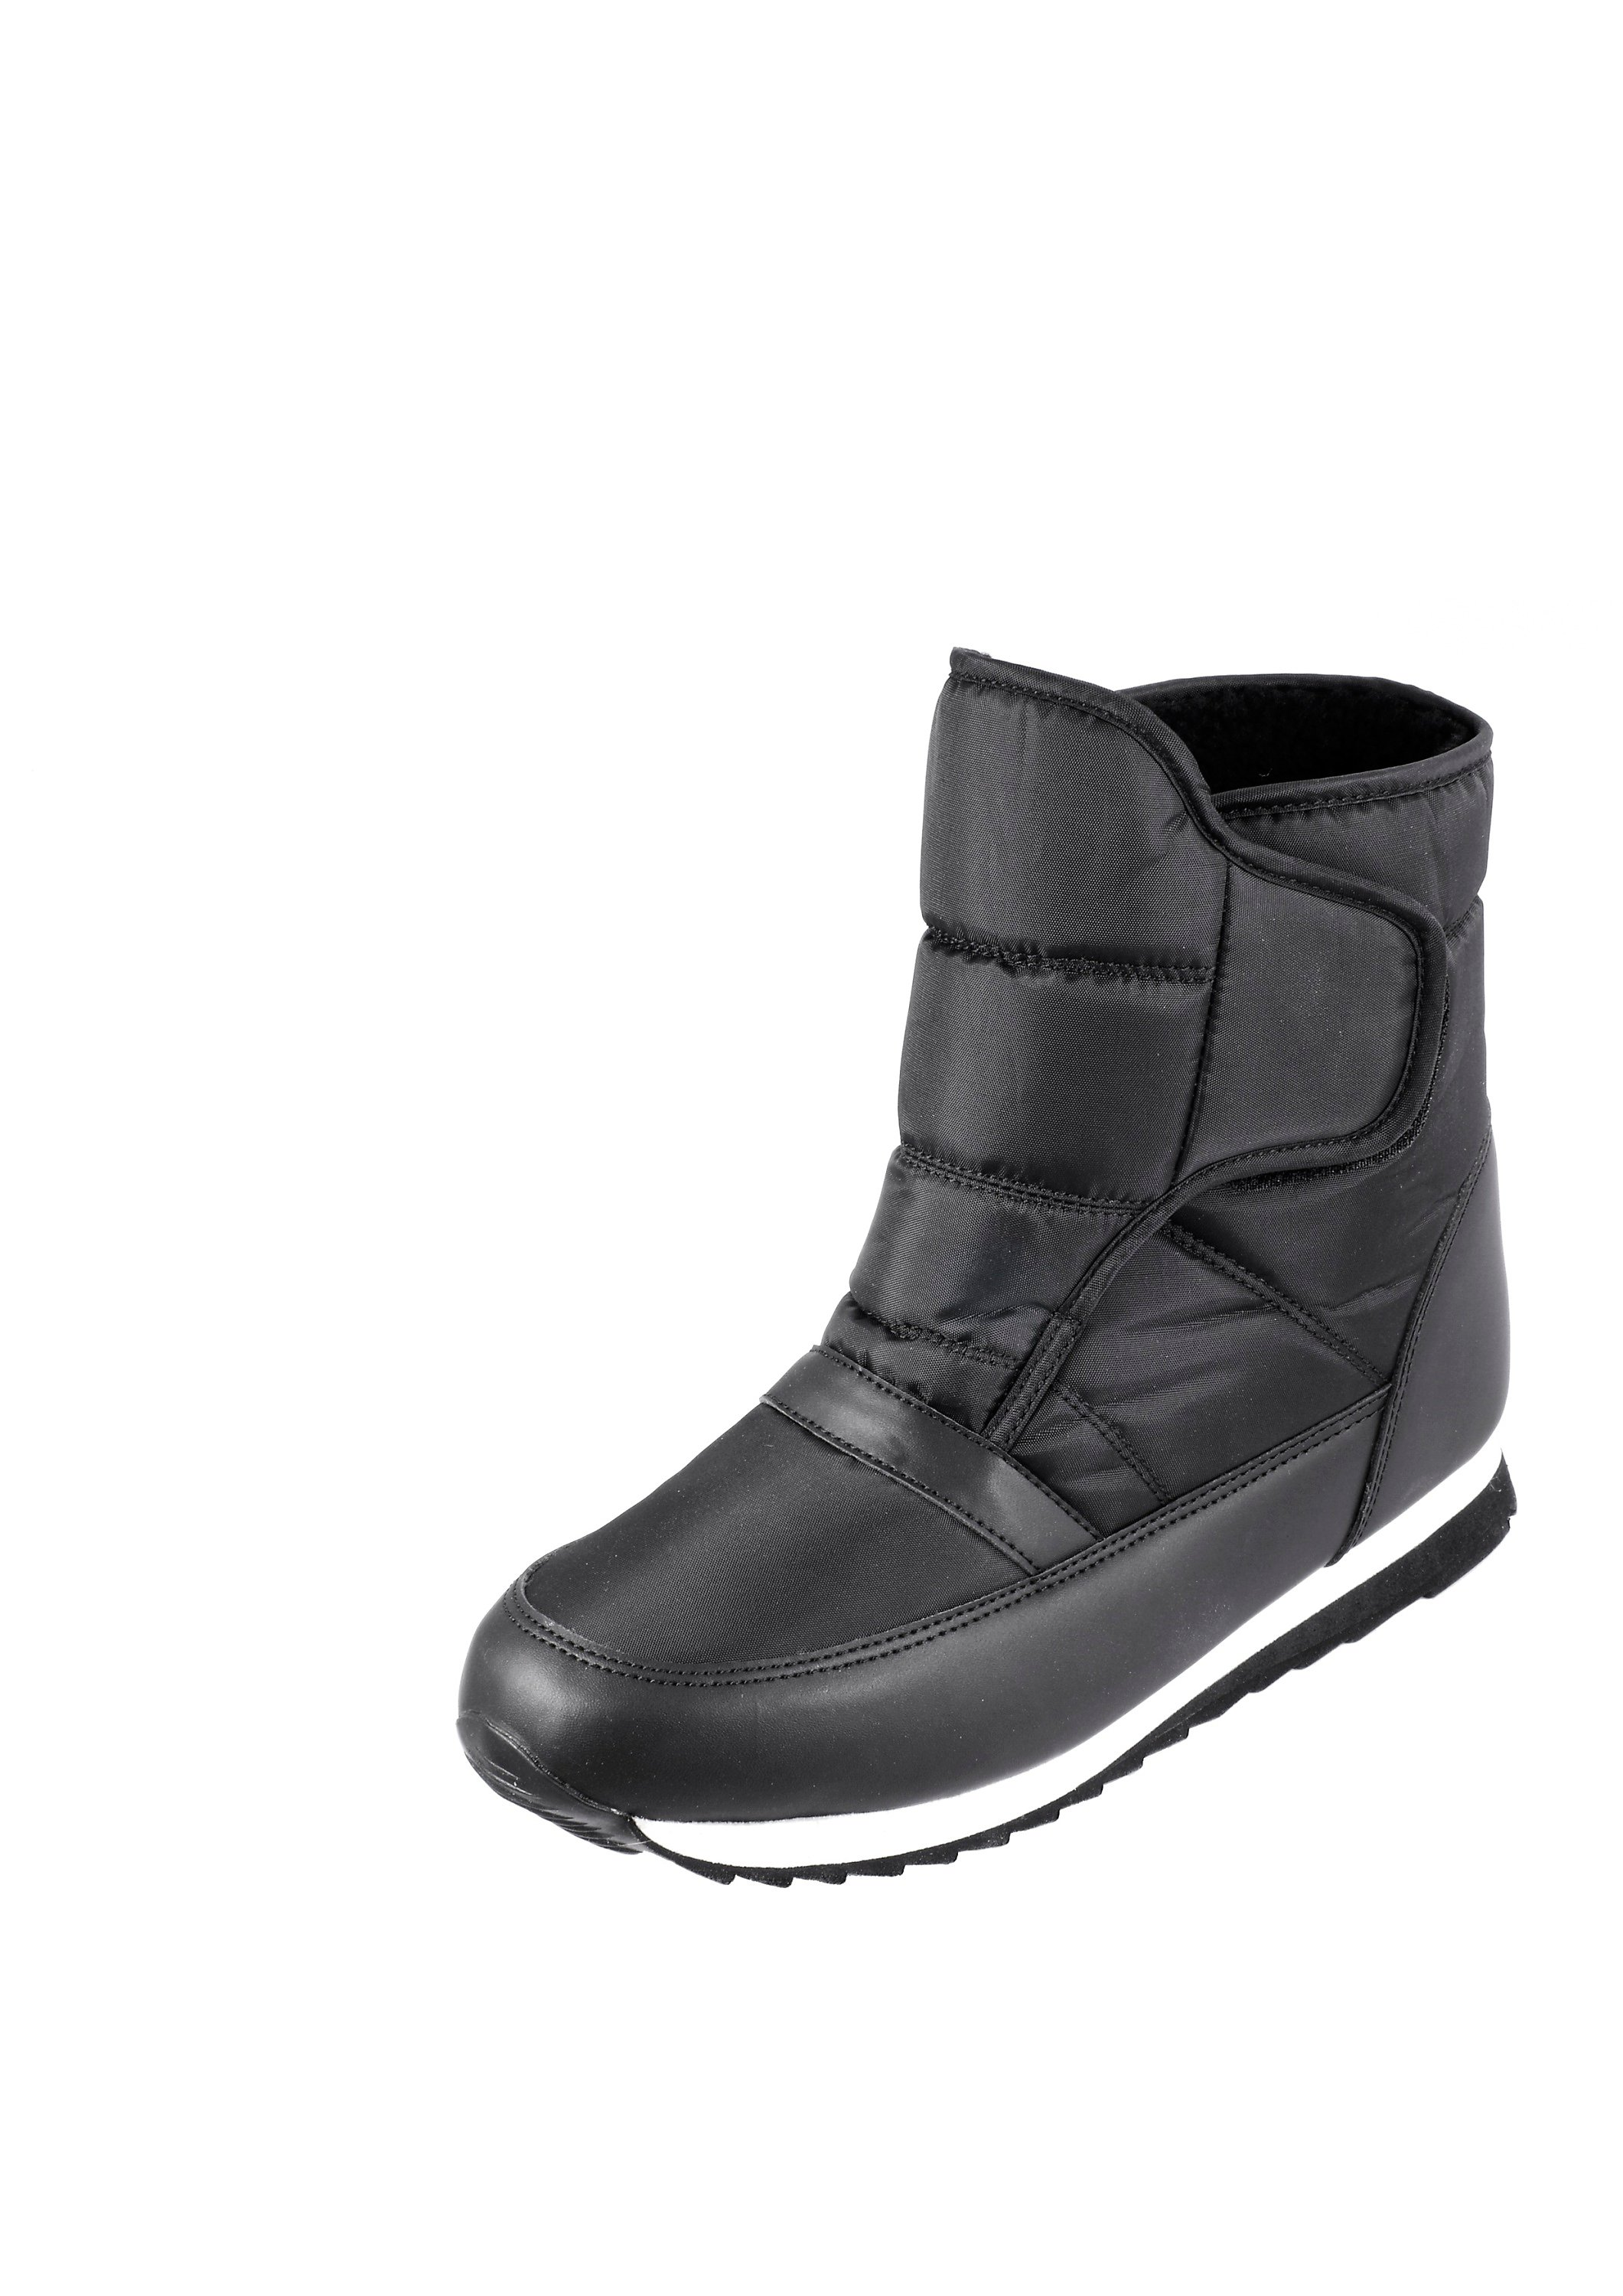 buy popular 8b5f7 5adb9 HappyShoes Thermo Winterstiefel, schwarz, Gr. 42 43 ...